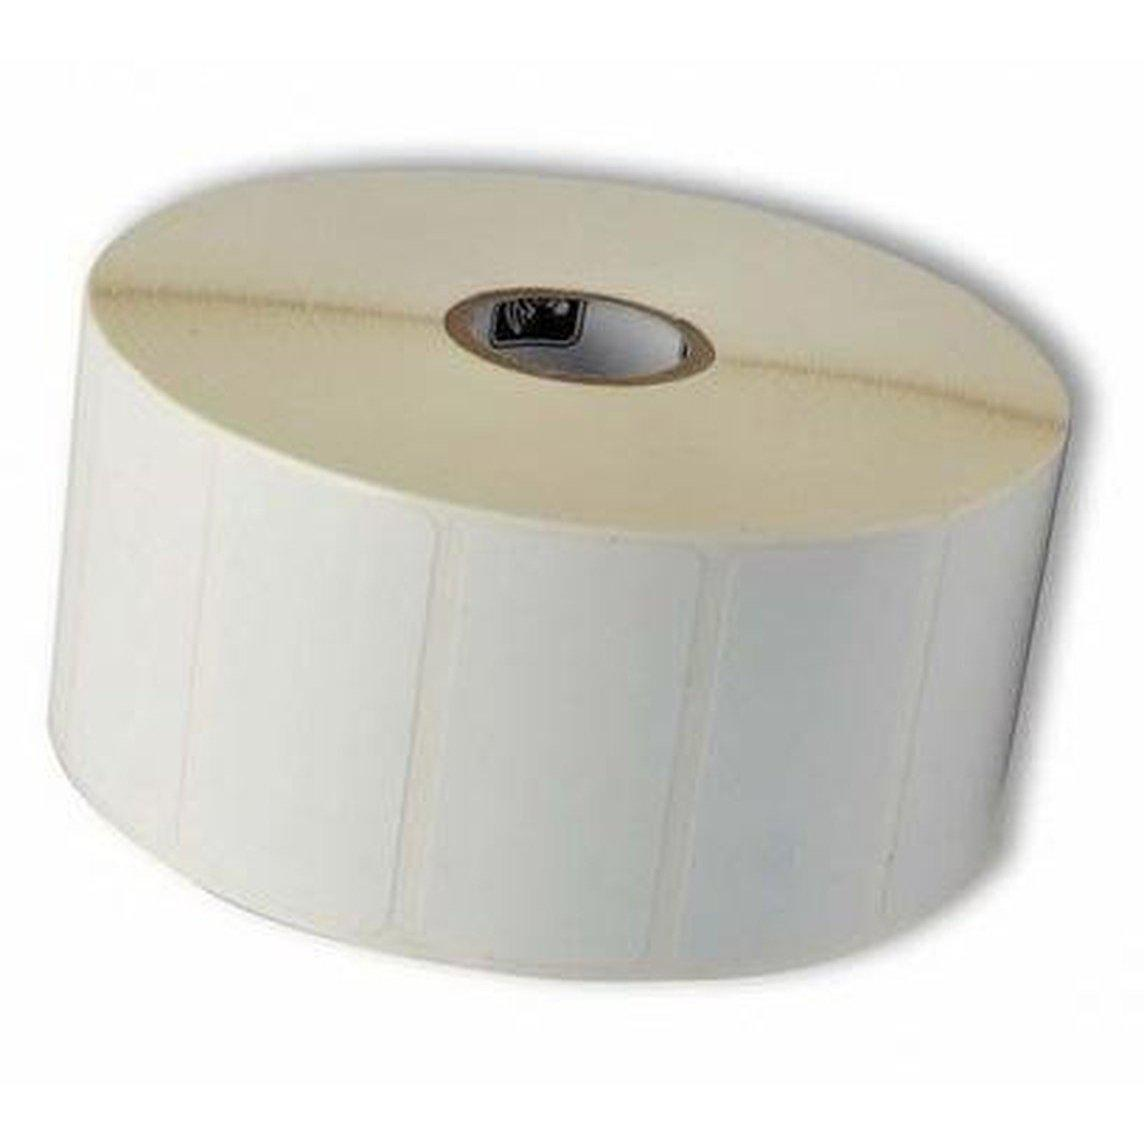 Zebra RFID Label Thermal Transfer Silverline Micro M4i 45 x 13mm, White | 10027755